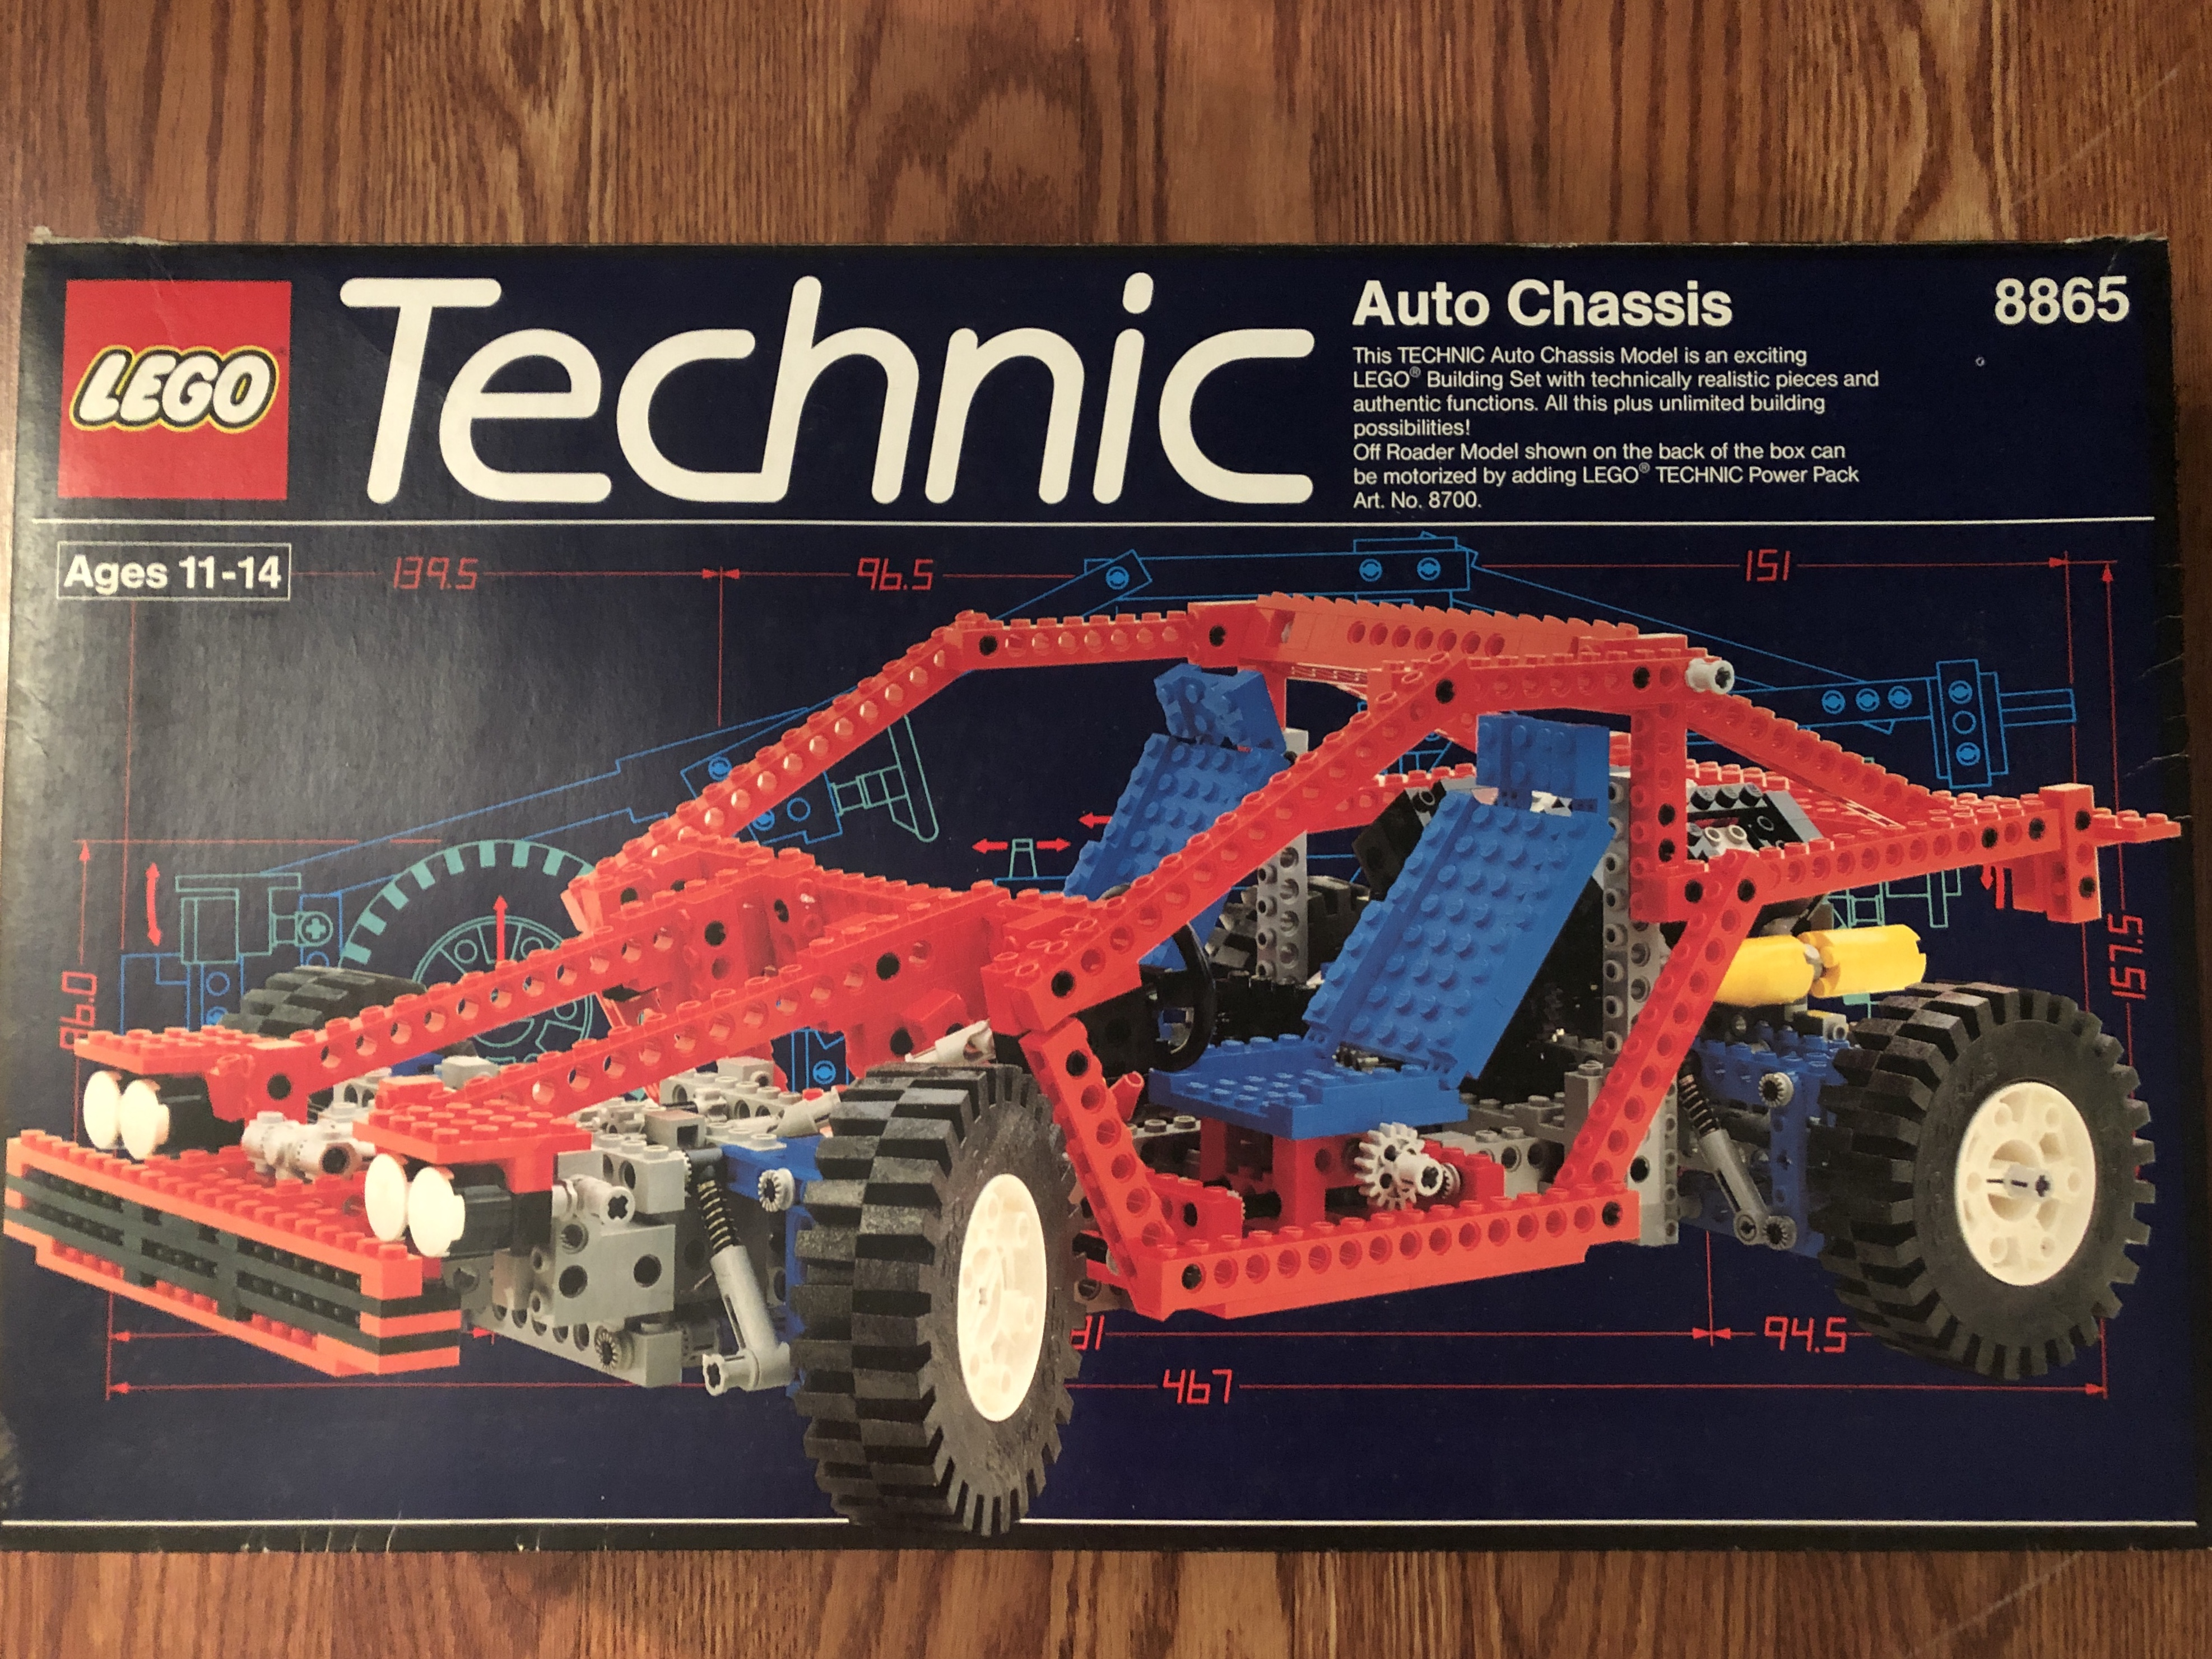 Auto Chassis 8865